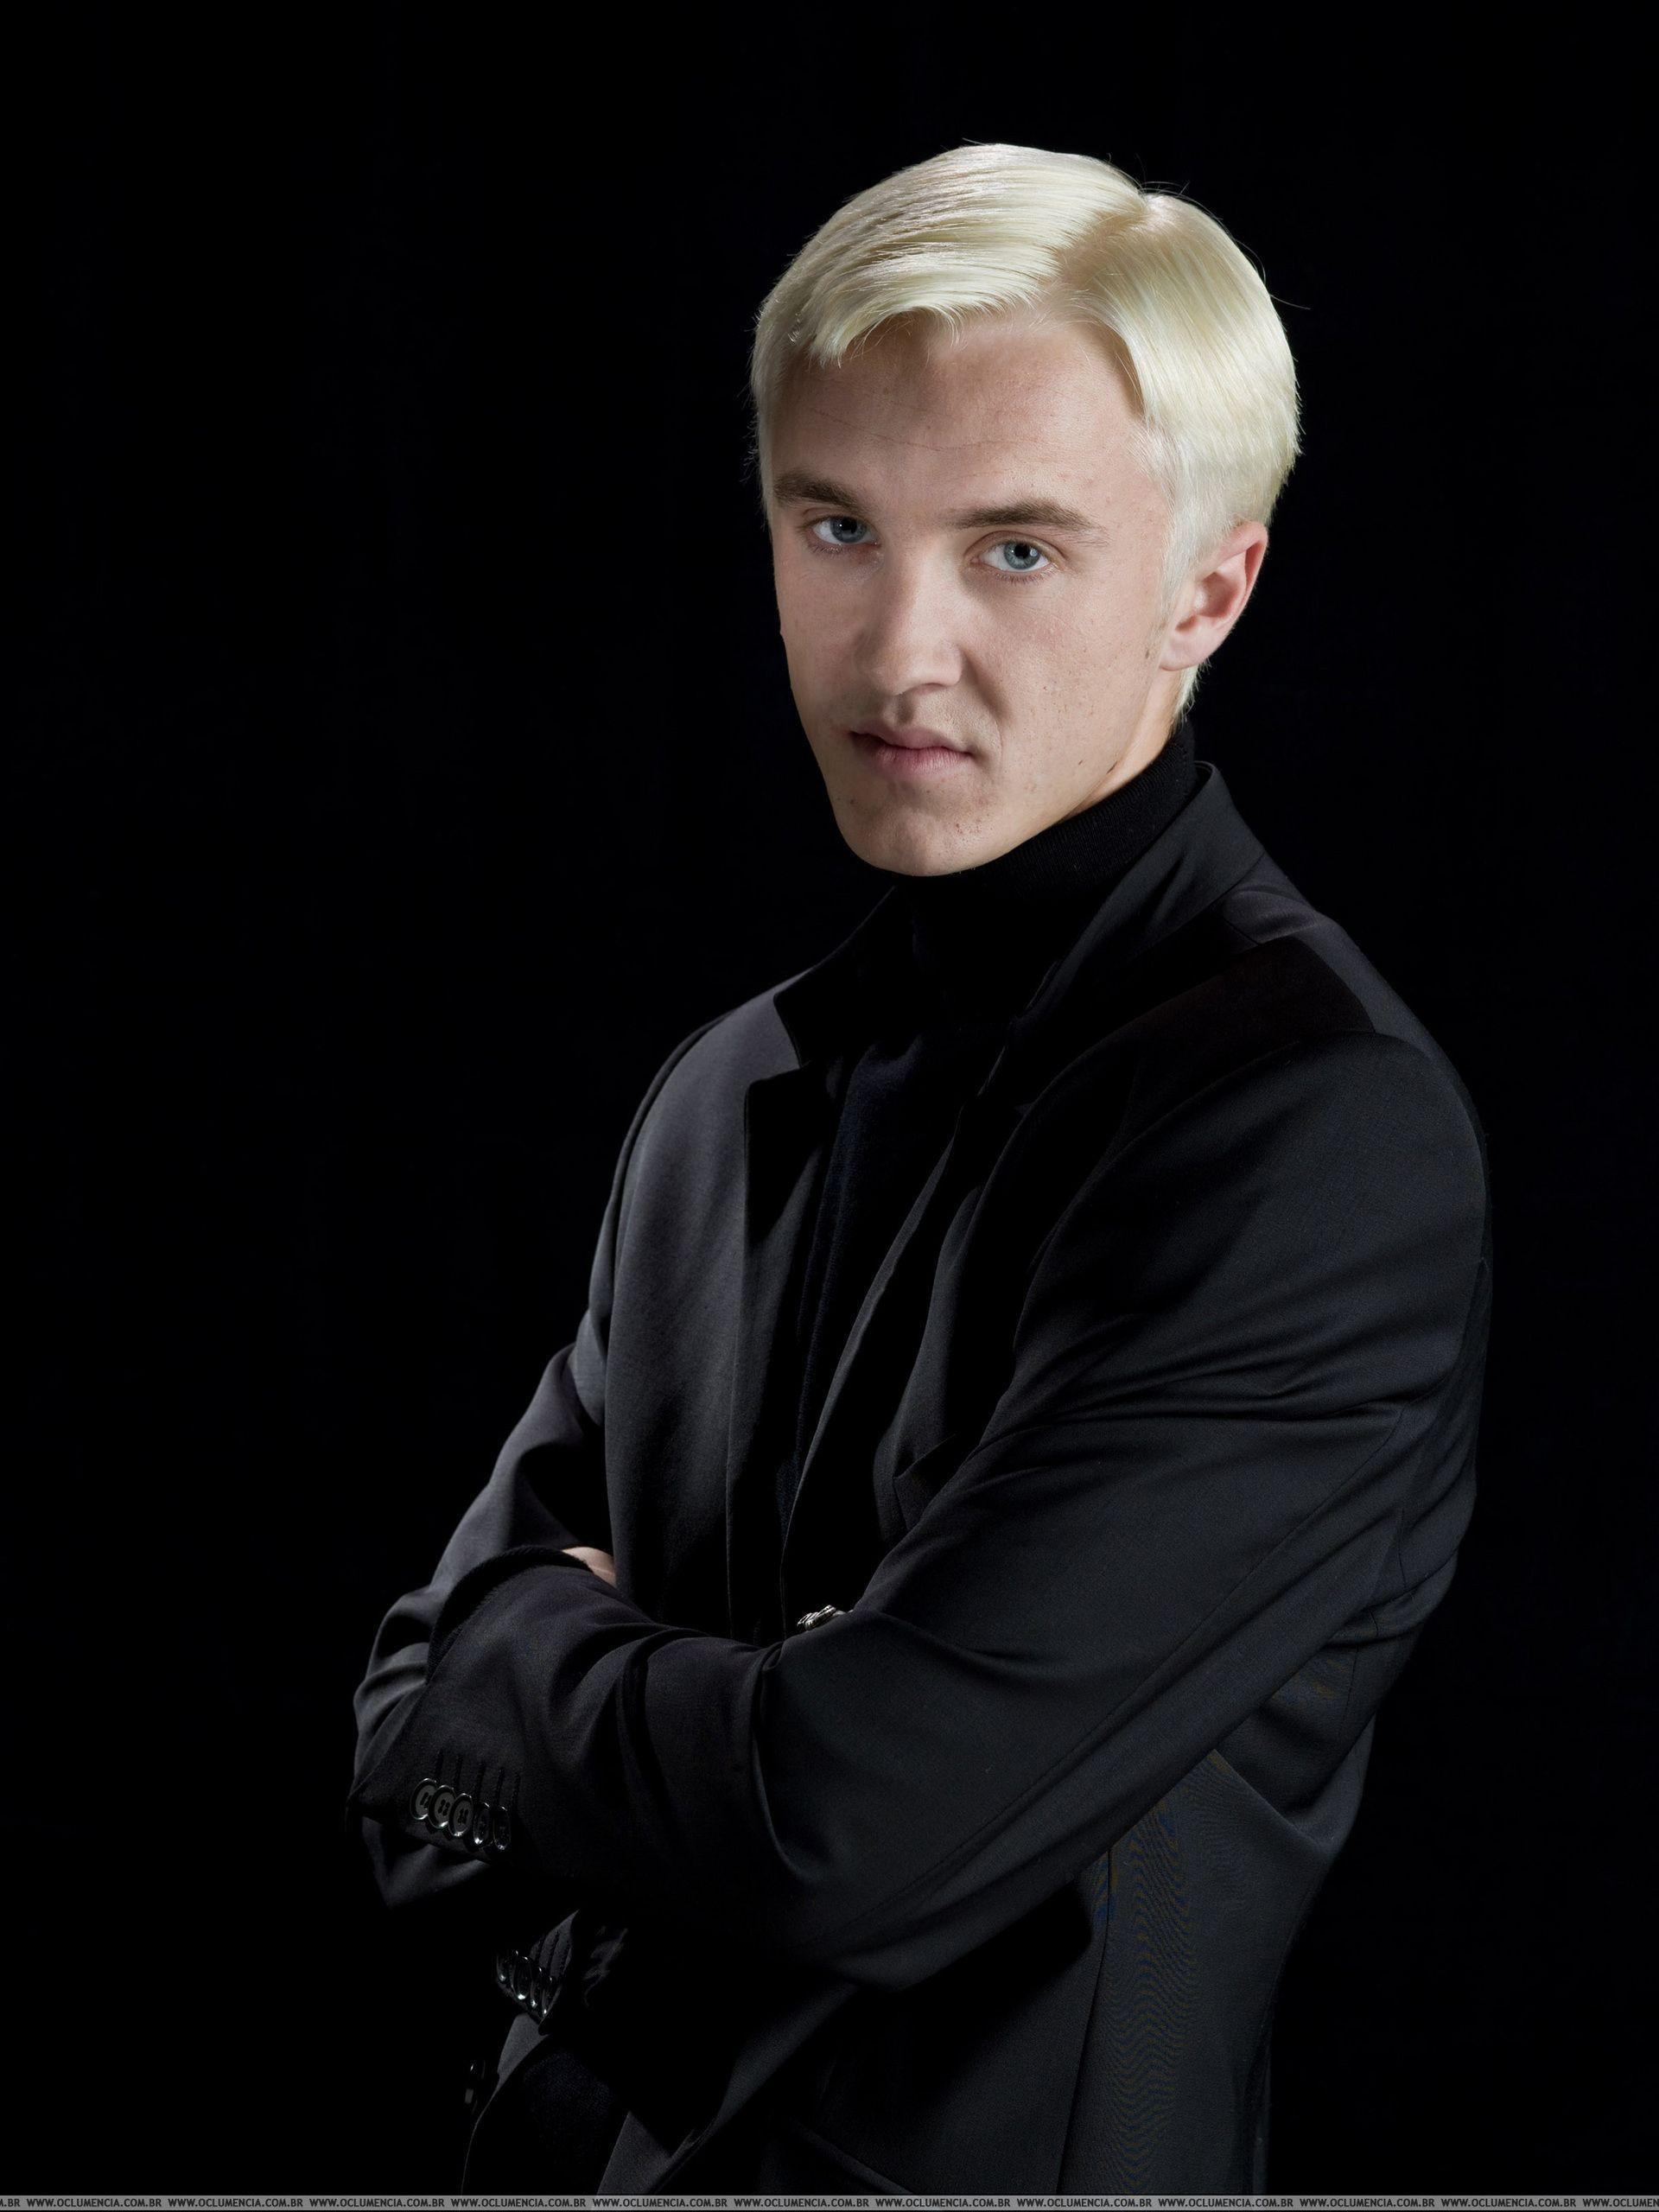 draco malfoy wallpapers wallpaper cave. Black Bedroom Furniture Sets. Home Design Ideas